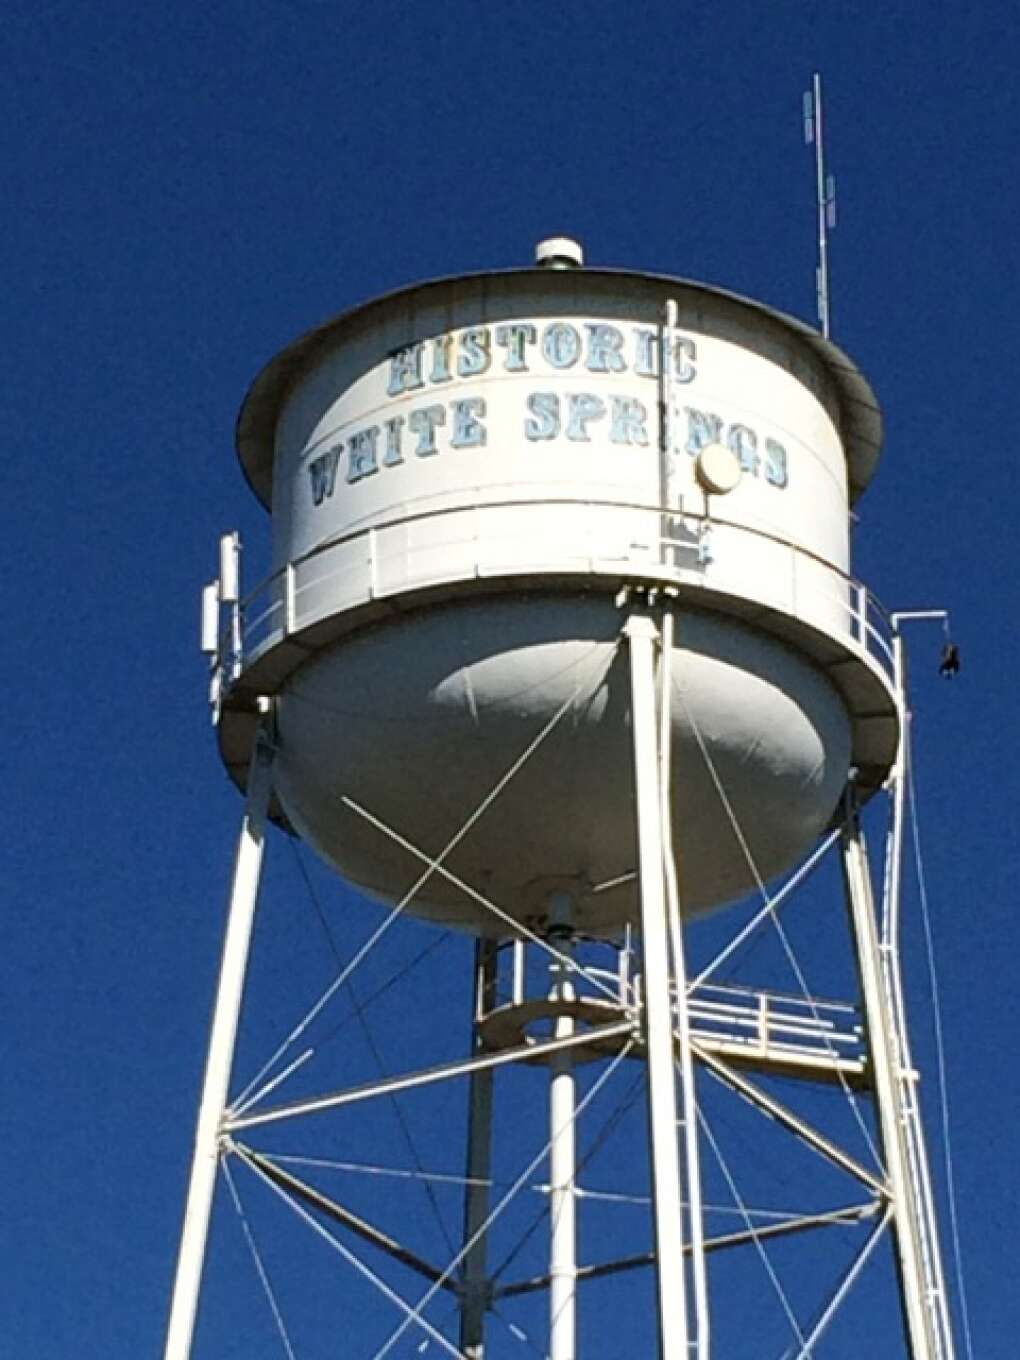 White Springs Water Tower